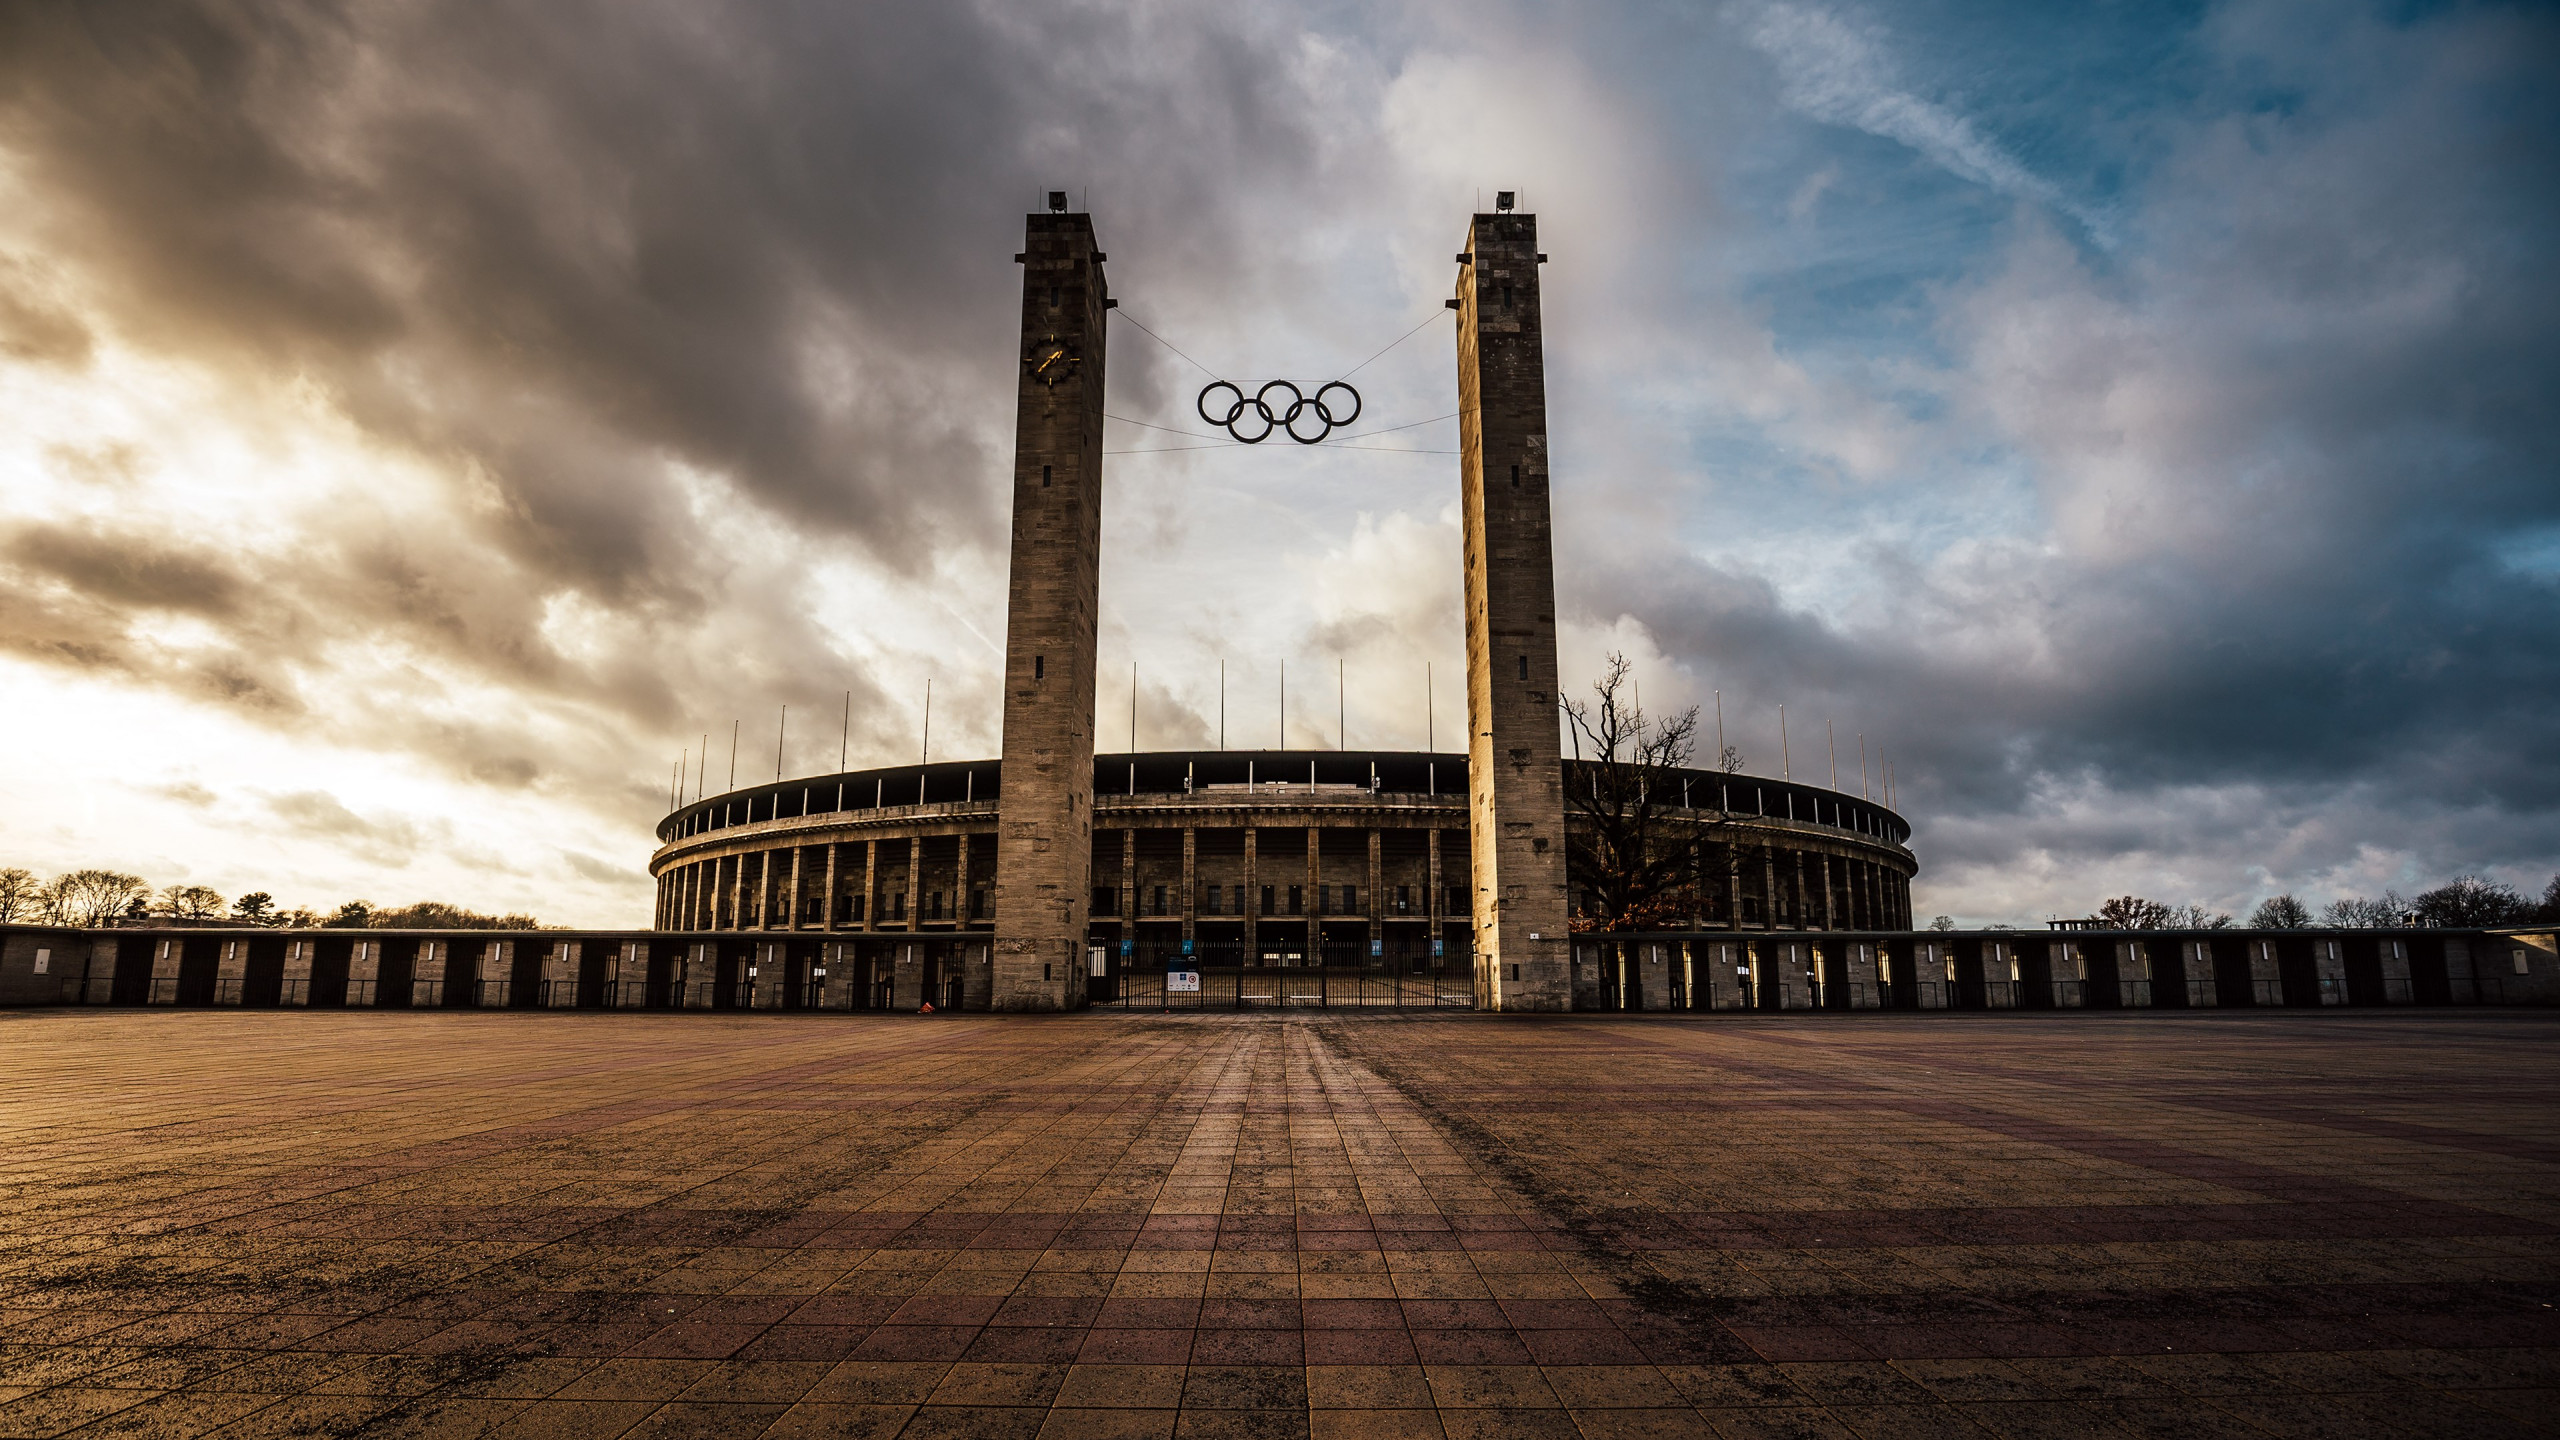 The Olympiastadion from Berlin wallpaper 2560x1440